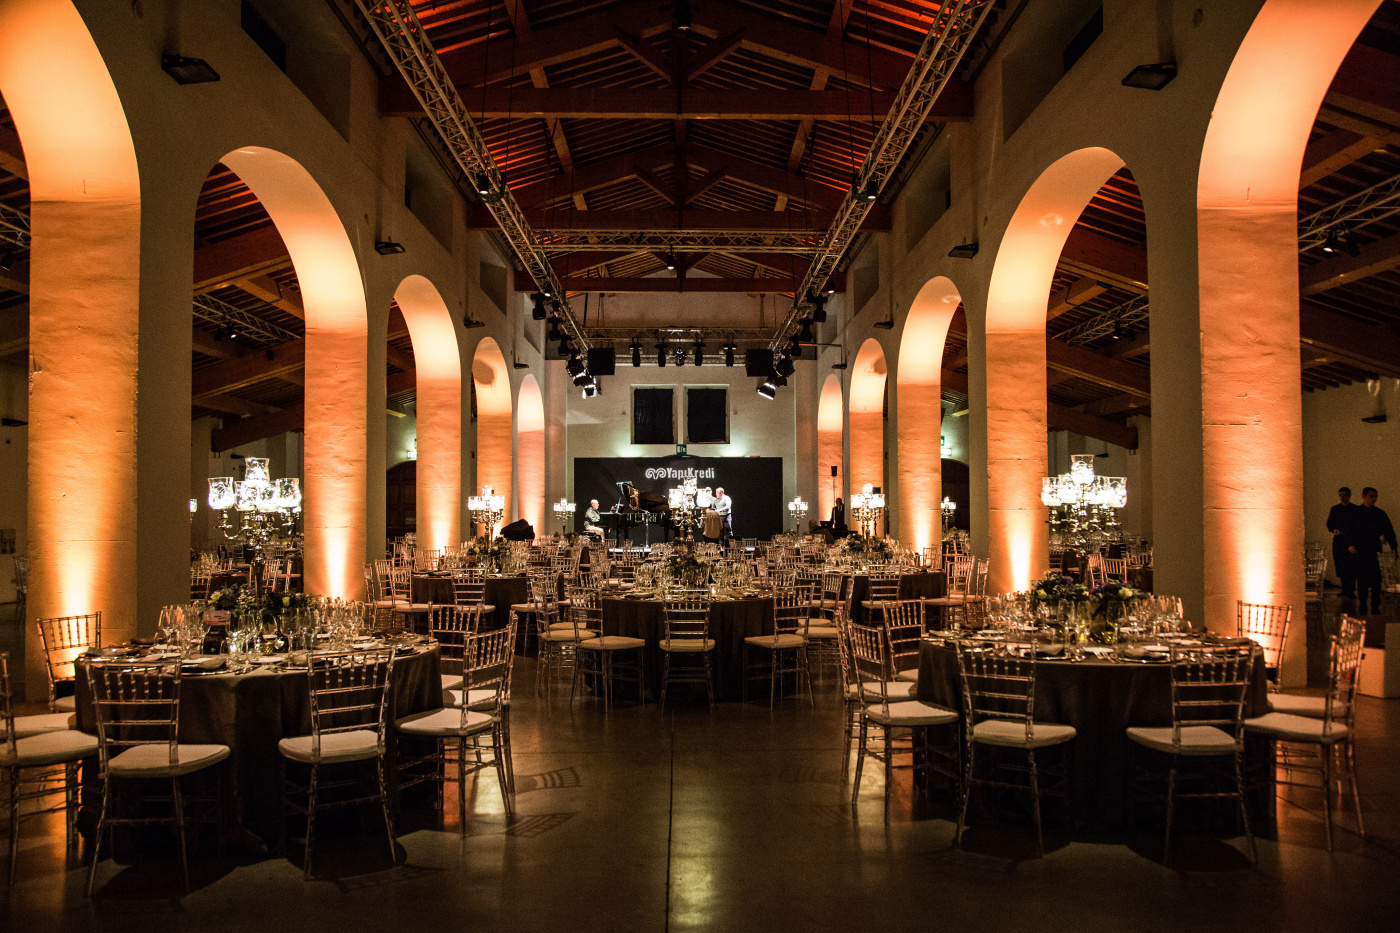 Corporate event in Florence with round tables and candelabras